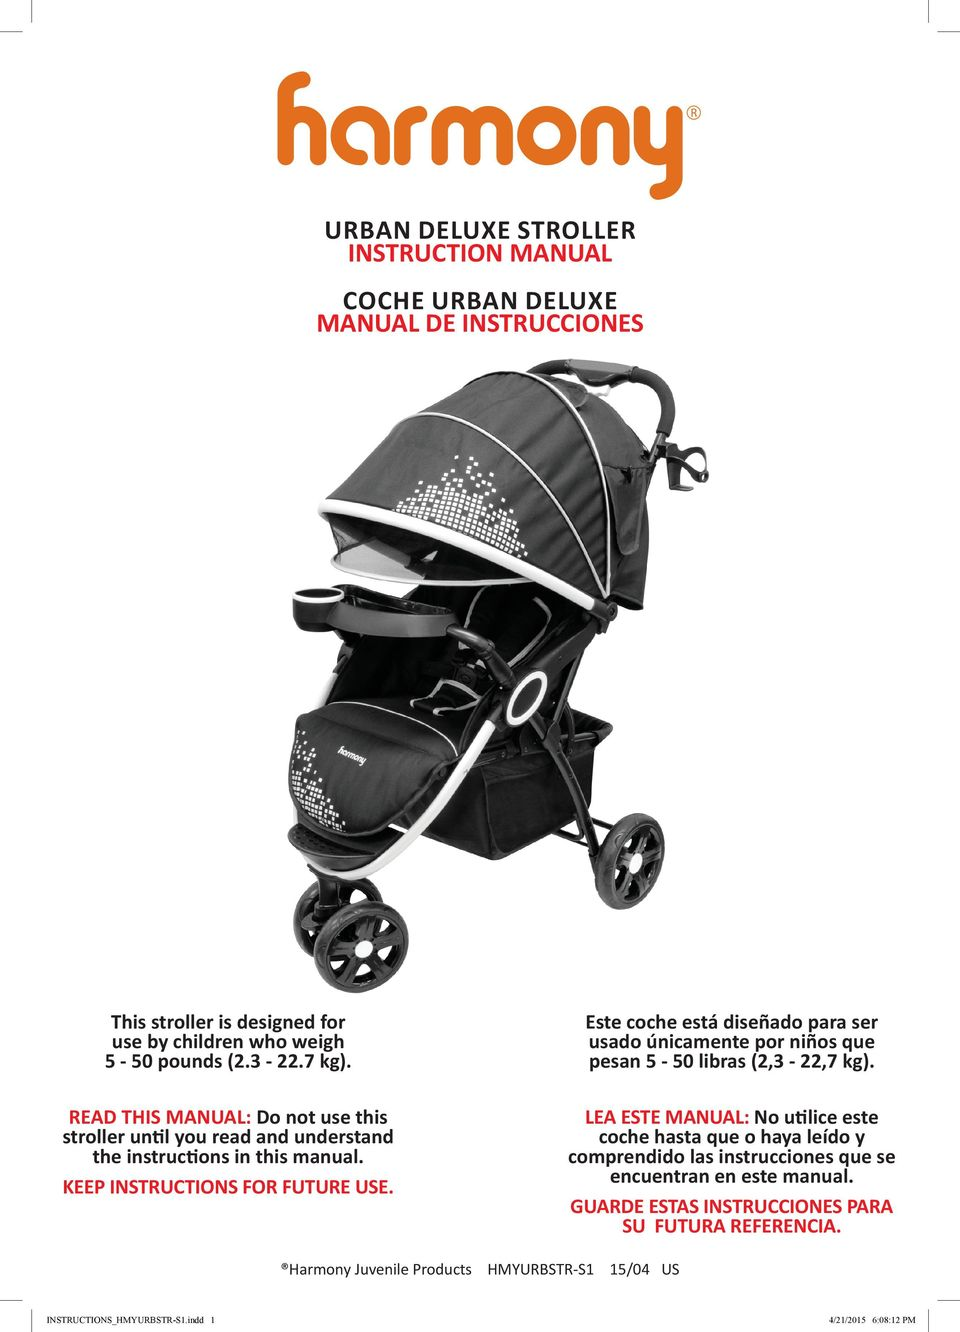 READ THIS MANUAL: Do not use this stroller until you read and understand the instructions in this manual. KEEP INSTRUCTIONS FOR FUTURE USE.